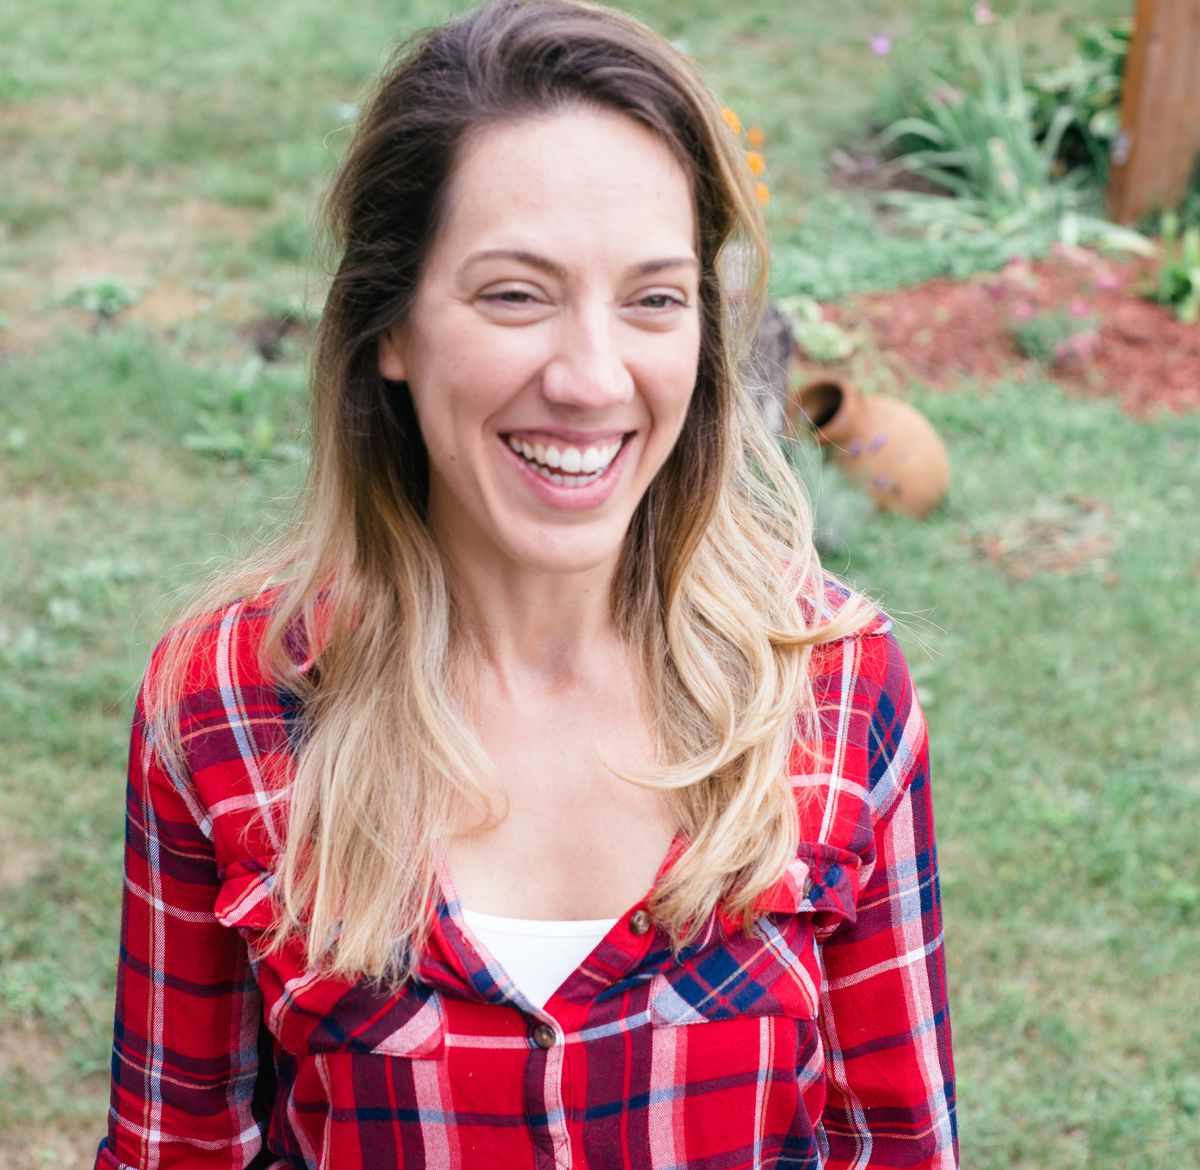 Belen is smiling, standing on green grass, wearing a red plaid shirt with a white undershirt